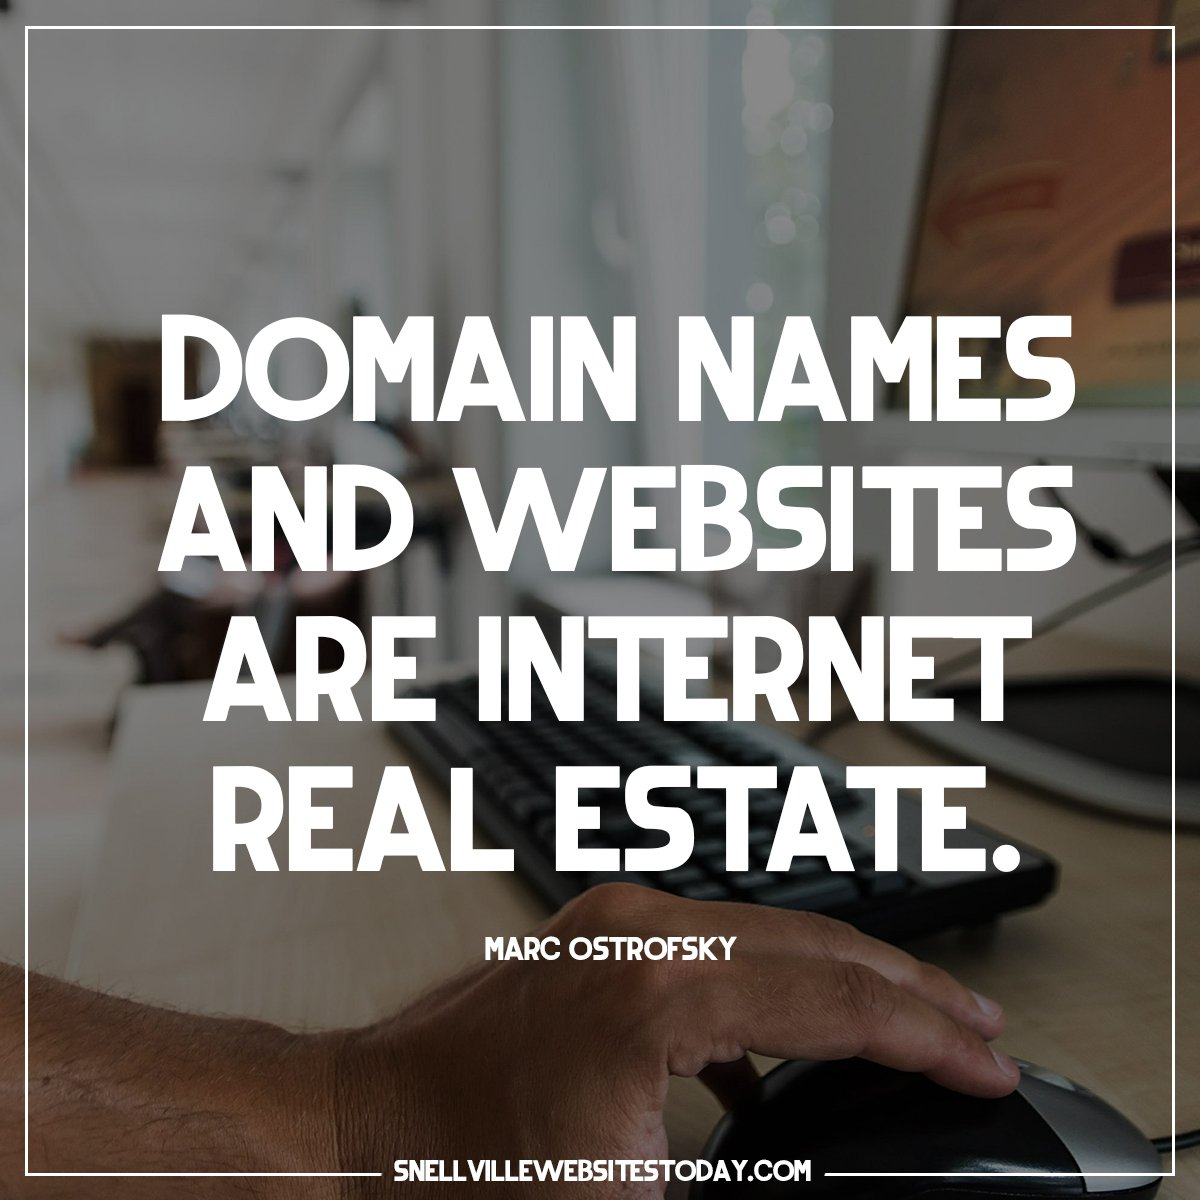 Internet Real Estate - Website Design for your small business